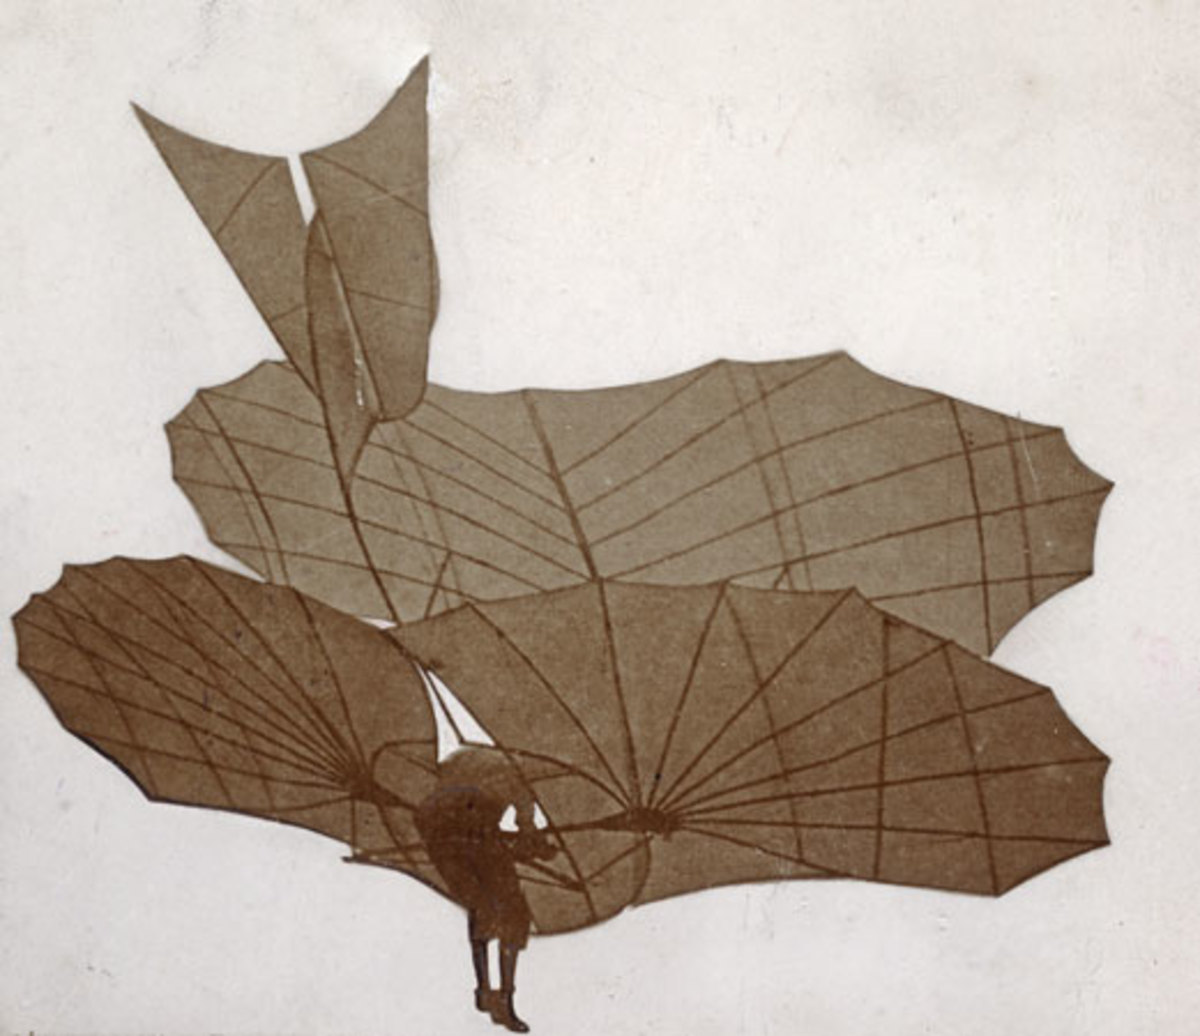 Lilienthal glider German aviation pioneer Otto Lilienthal piloting one of his gliders, c. 1895